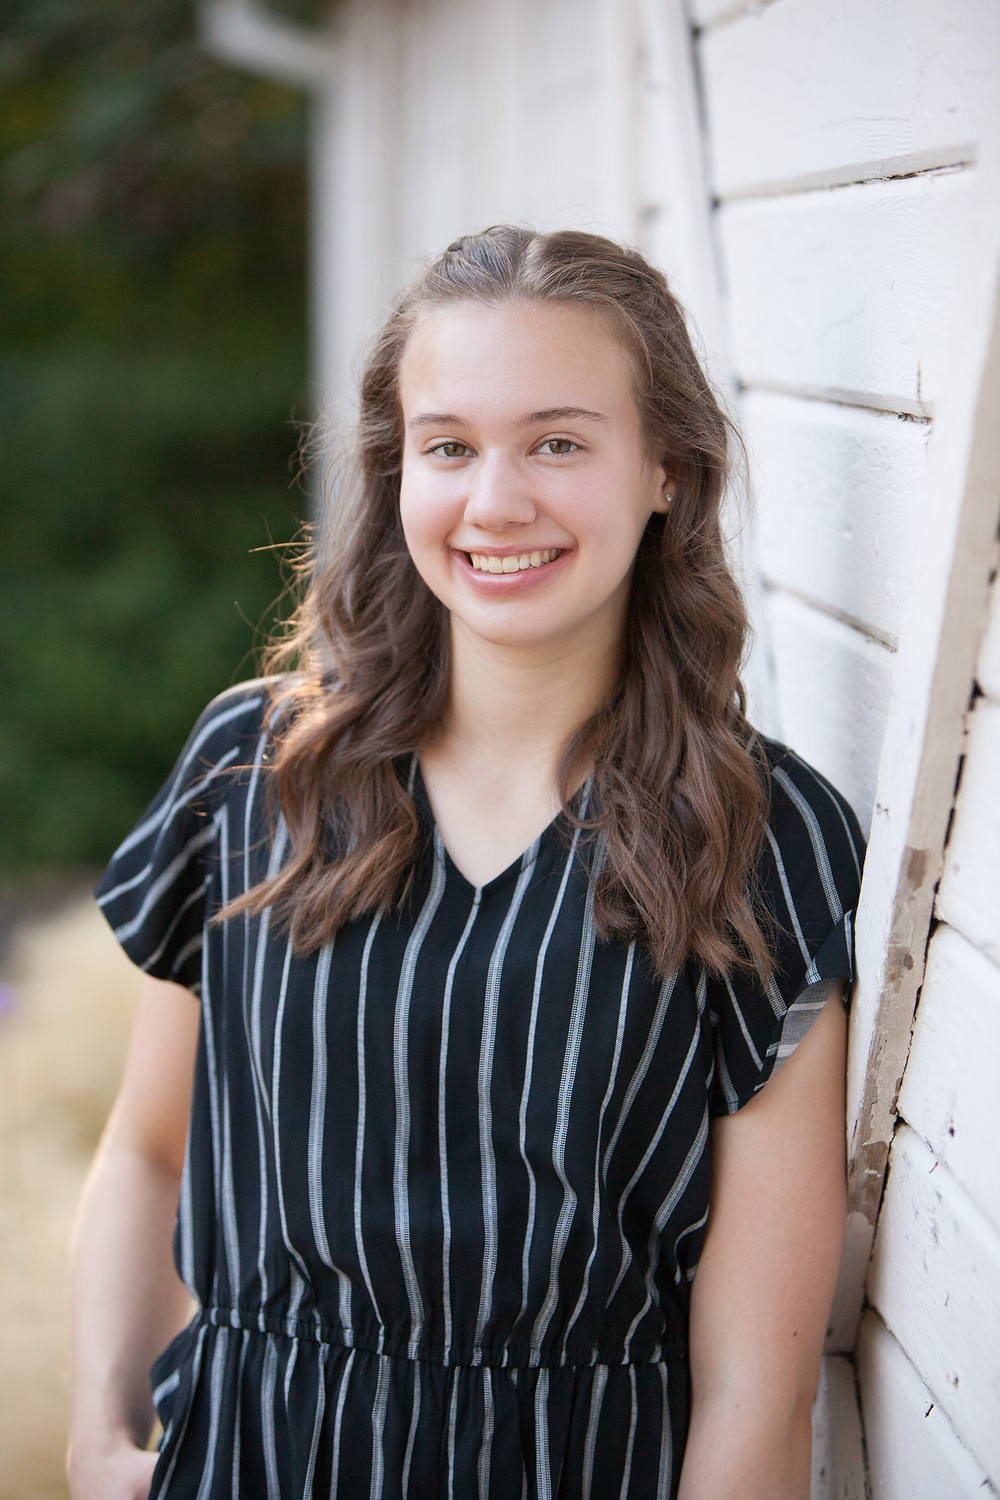 Clackamas Middle College graduate Julia Bressel, the 2021 winner of the Chartwells K12 Culinary Scholarship.